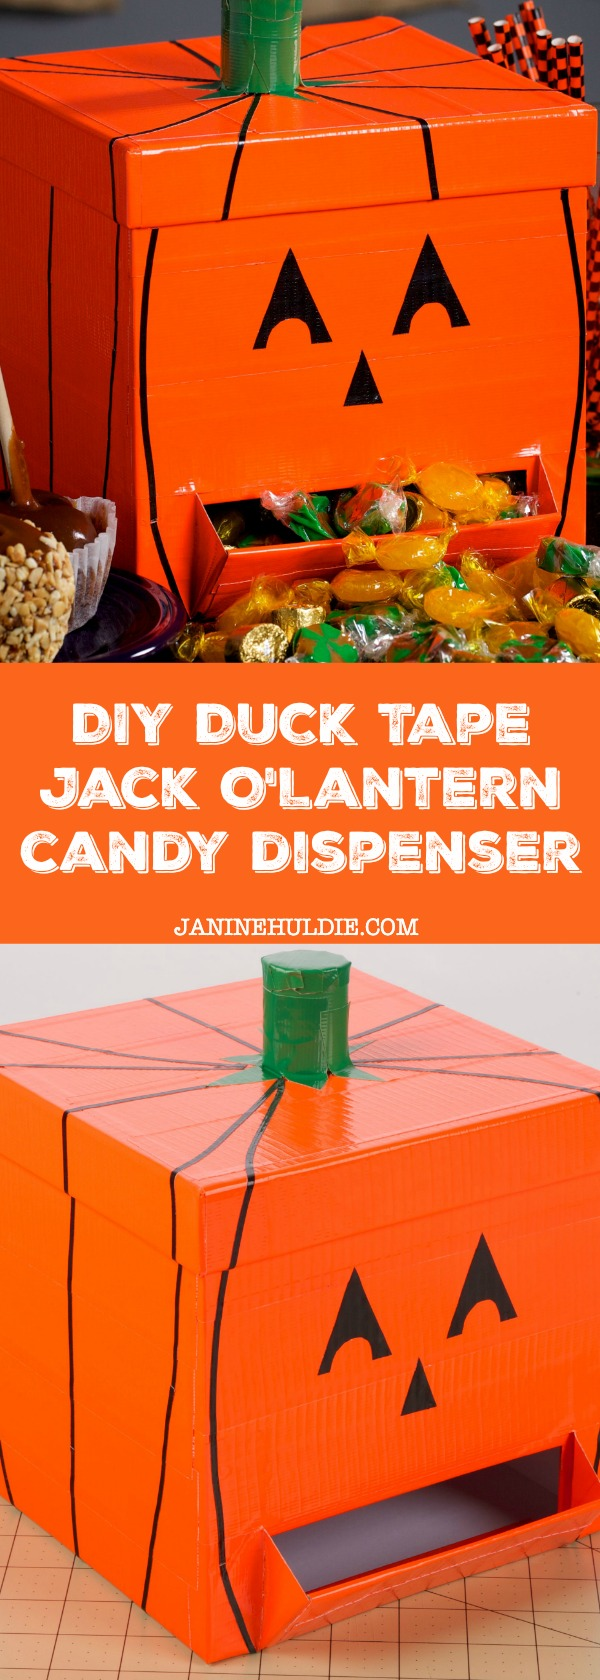 DIY Duck Tape Jack O Lantern Candy Dispenser